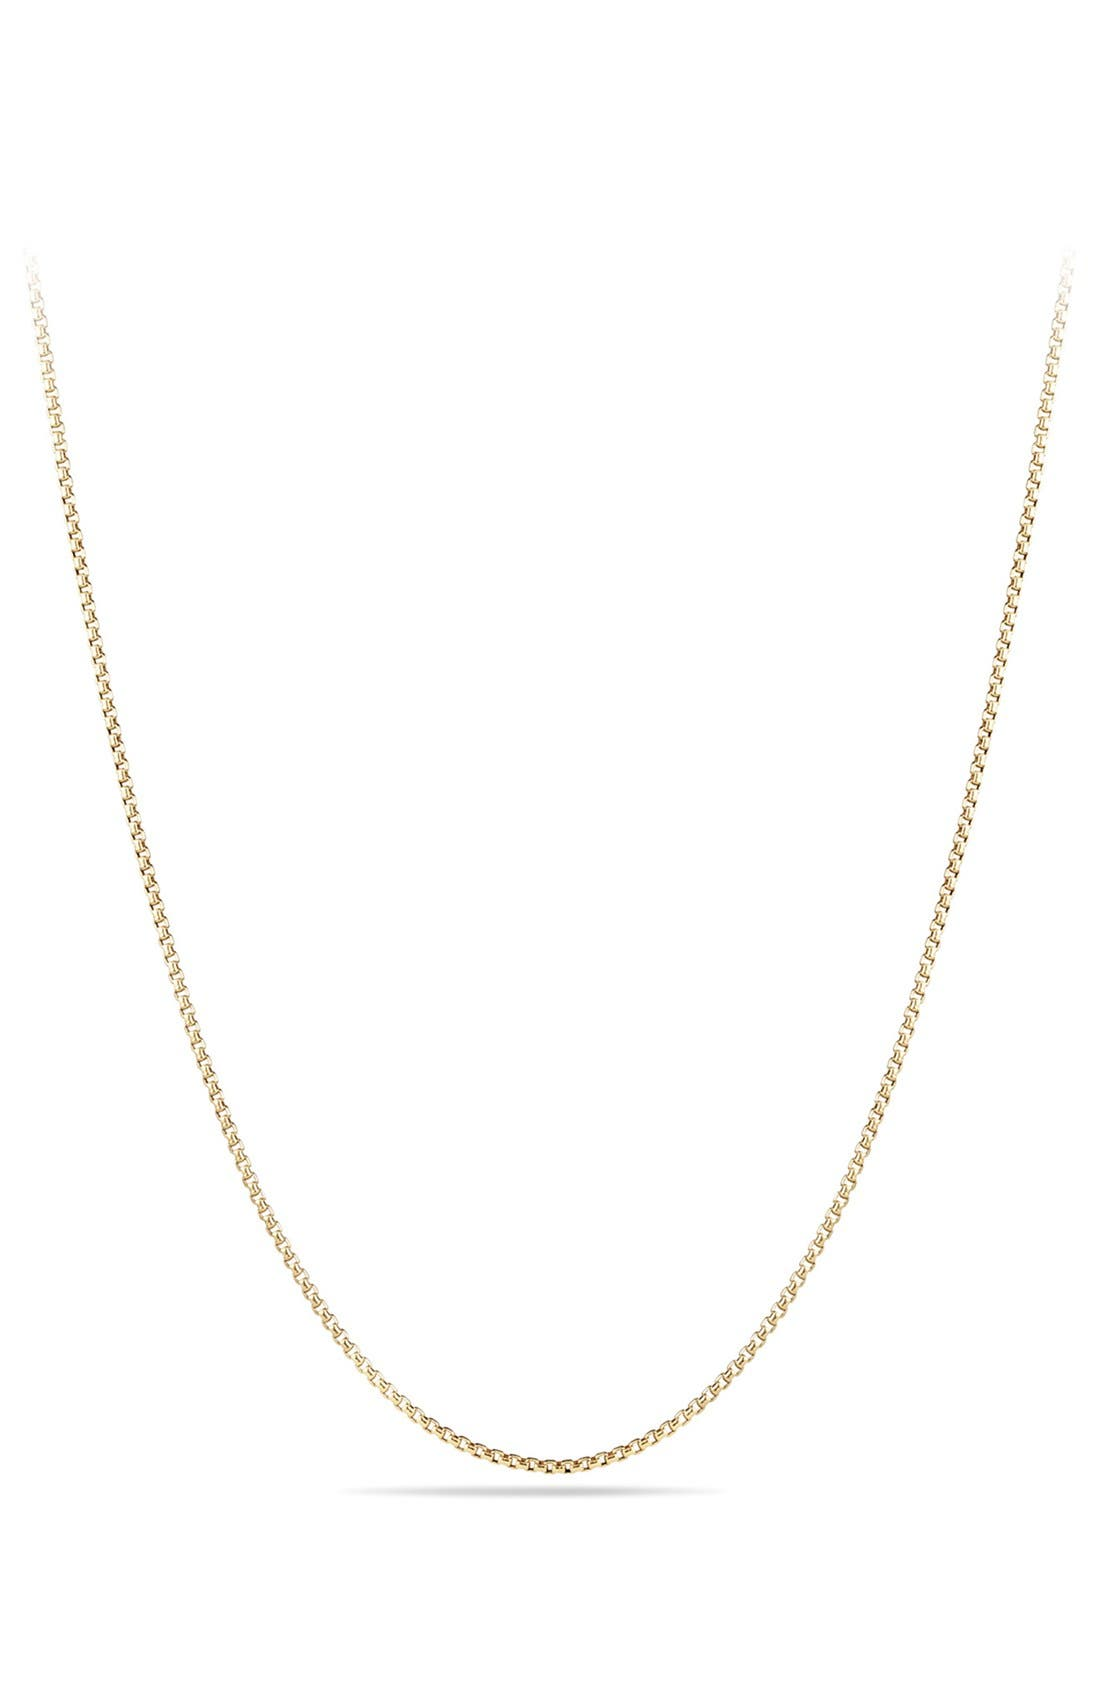 David Yurman Box Chain Necklace in 18K Gold